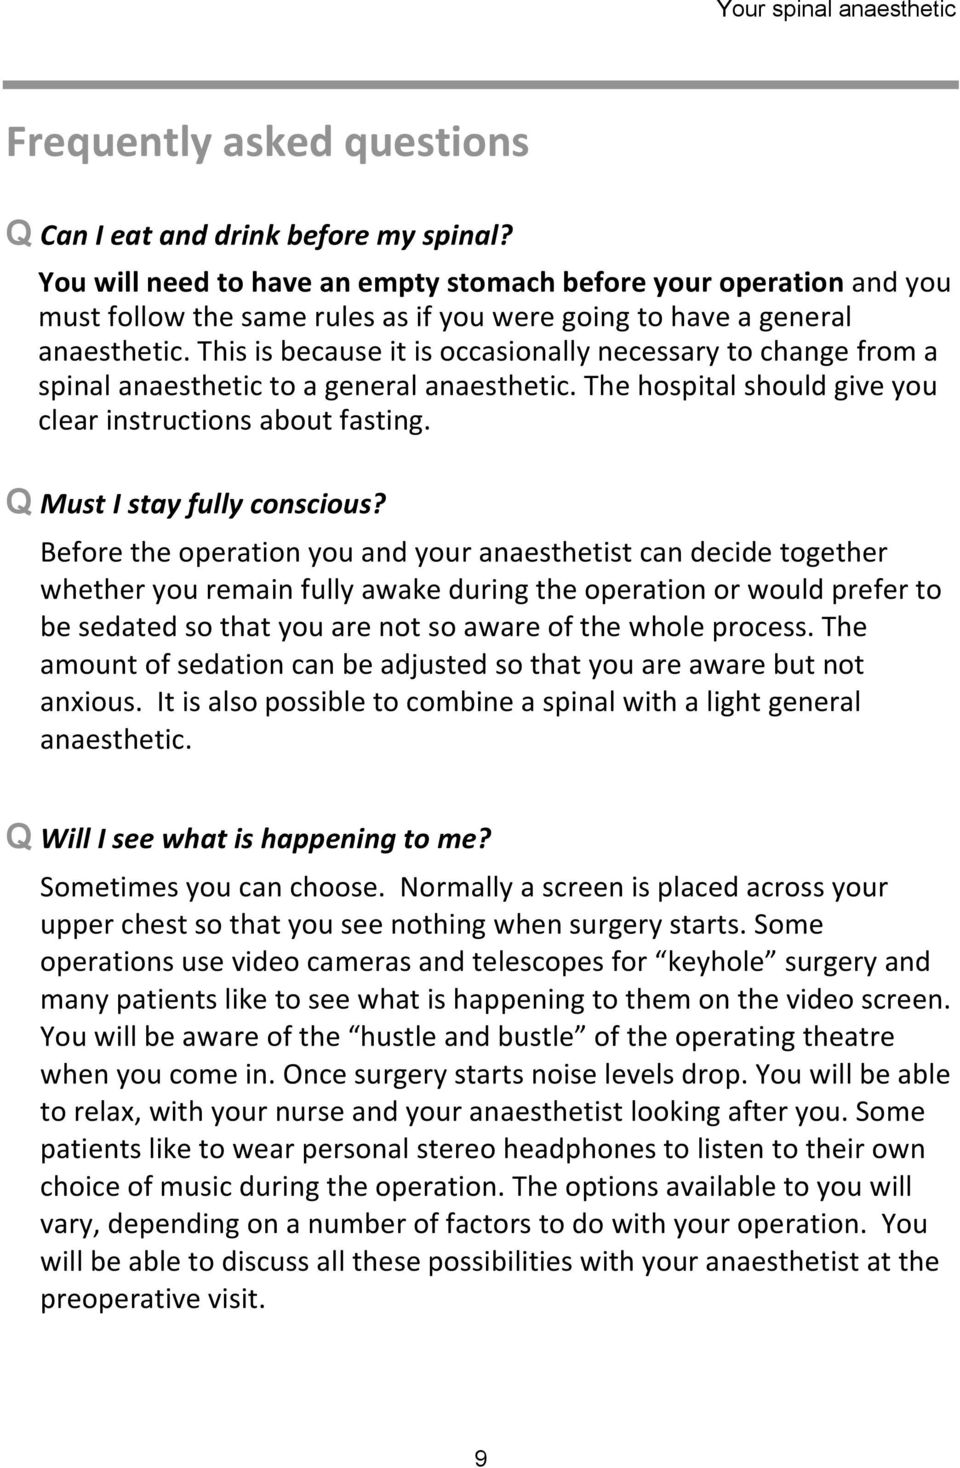 This is because it is occasionally necessary to change from a spinal anaesthetic to a general anaesthetic. The hospital should give you clear instructions about fasting. Q Must I stay fully conscious?